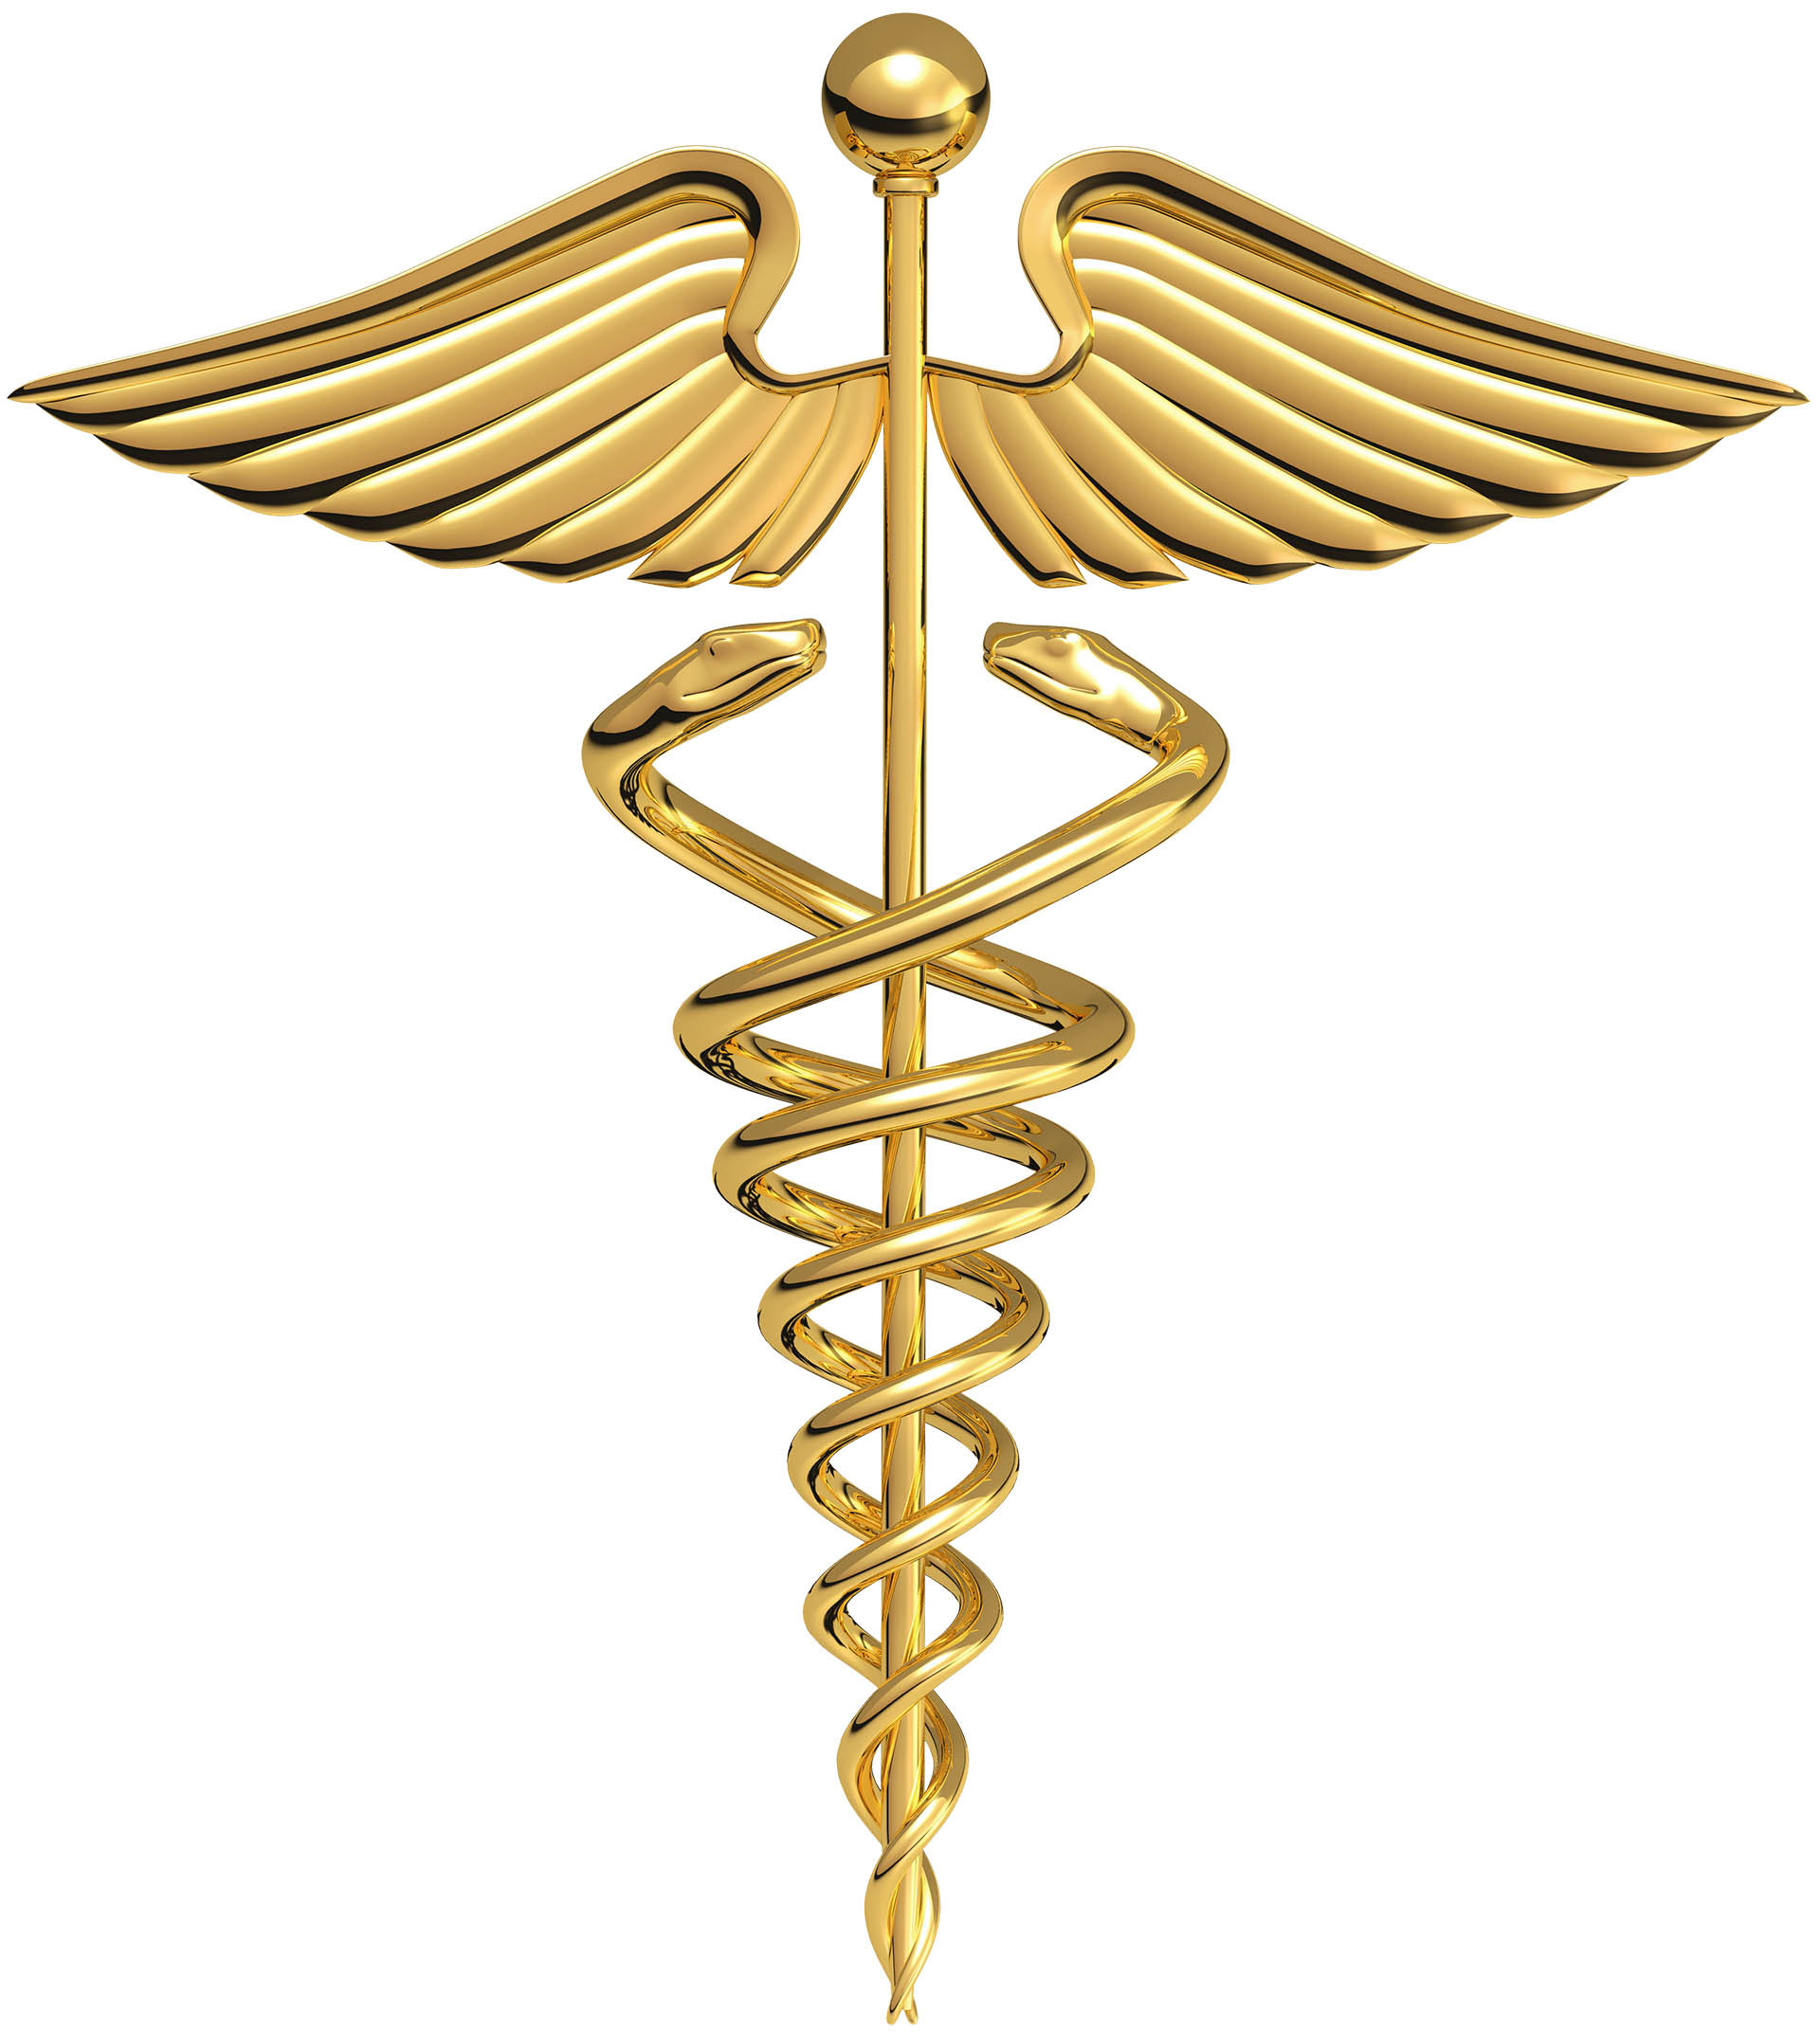 Caduceus - HEALTH - Messenger of the gods - COMPASSION - MERCY - BENEVOLENCE - BE HUMANE - DO NO HARM - FEAR NOT - BE NOT AFRAID - CAUSE NO PAIN - BE AS PAINLESS AS POSSIBLE - CAUSE NO FEAR - DO NOT BE SCARY - USE BIRTH CONTROL - PERMIT DIVORCE - DO NOT PUNISH - DO NOT MAKE THREATS - DO NOT BE COERCIVE - BE PERMISSIVE - BE TOLERANT - FREE UNIVERSAL HEALTH CARE - FREE UNIVERSAL EDUCATION - UNIVERSAL HOME OWNERSHIP